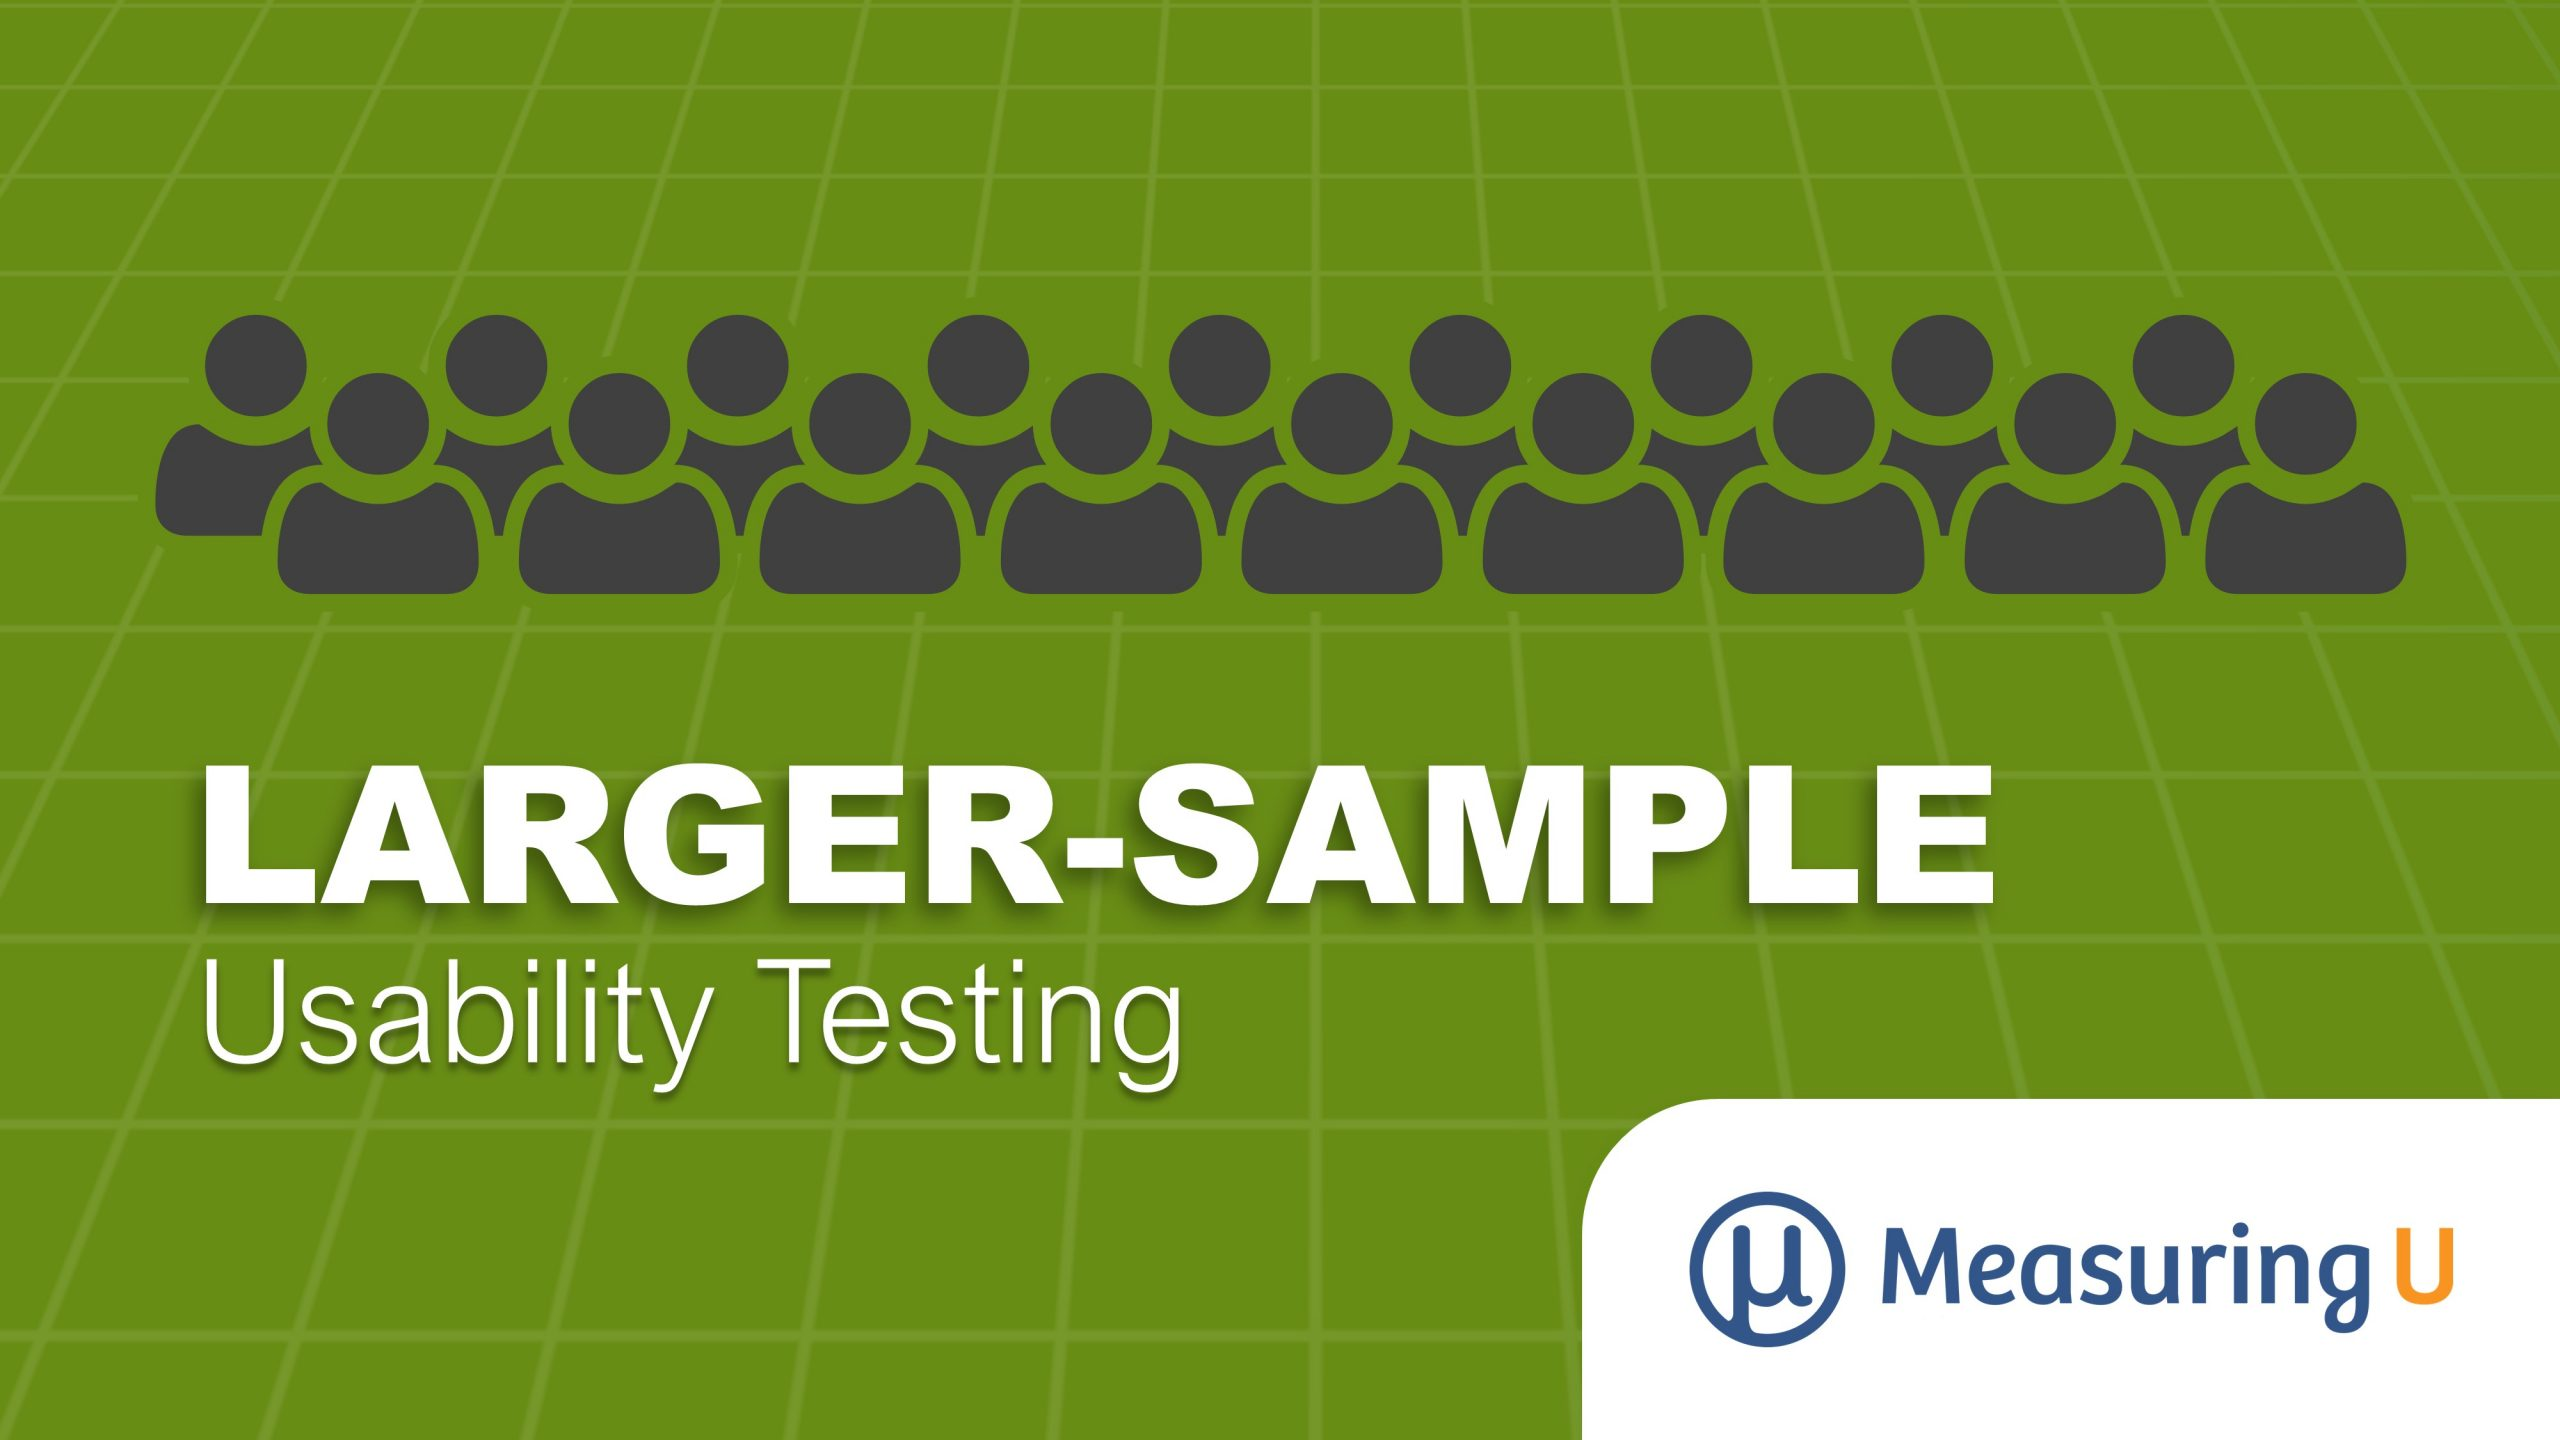 What Do You Gain from Larger-Sample Usability Tests?